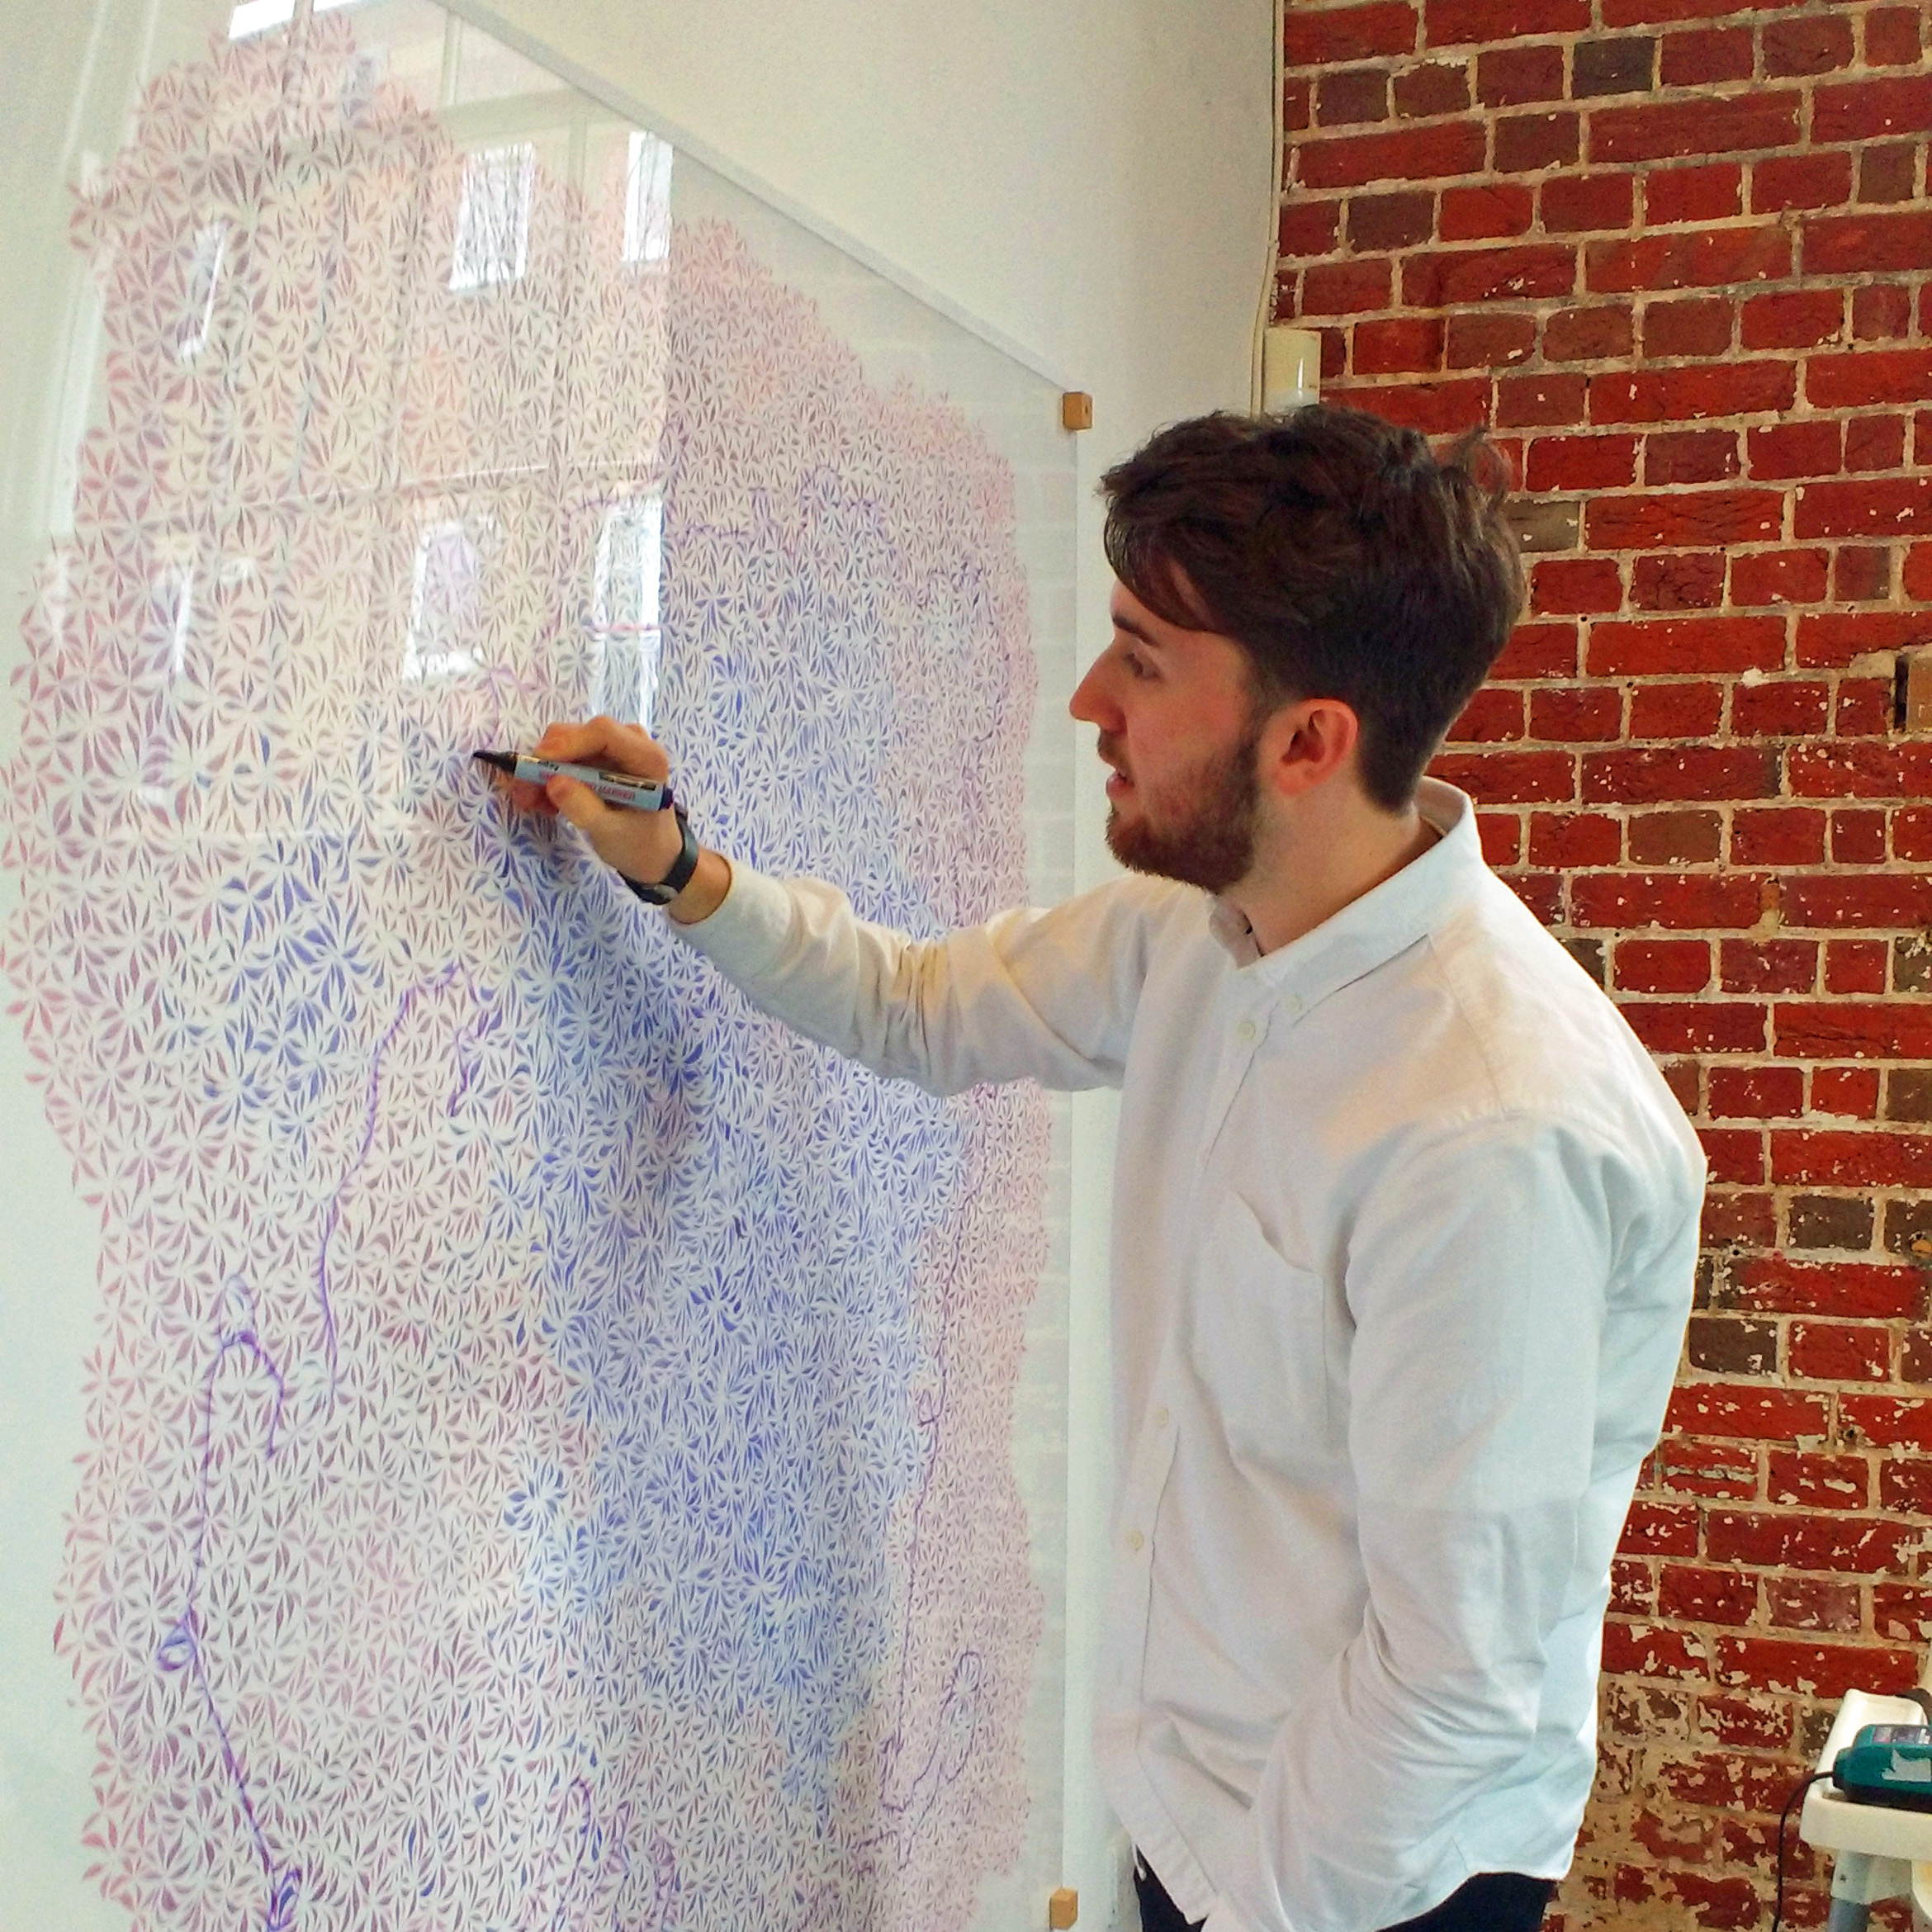 An exhibition participant drawing on a 1.5 m sq ink pattern under perspex